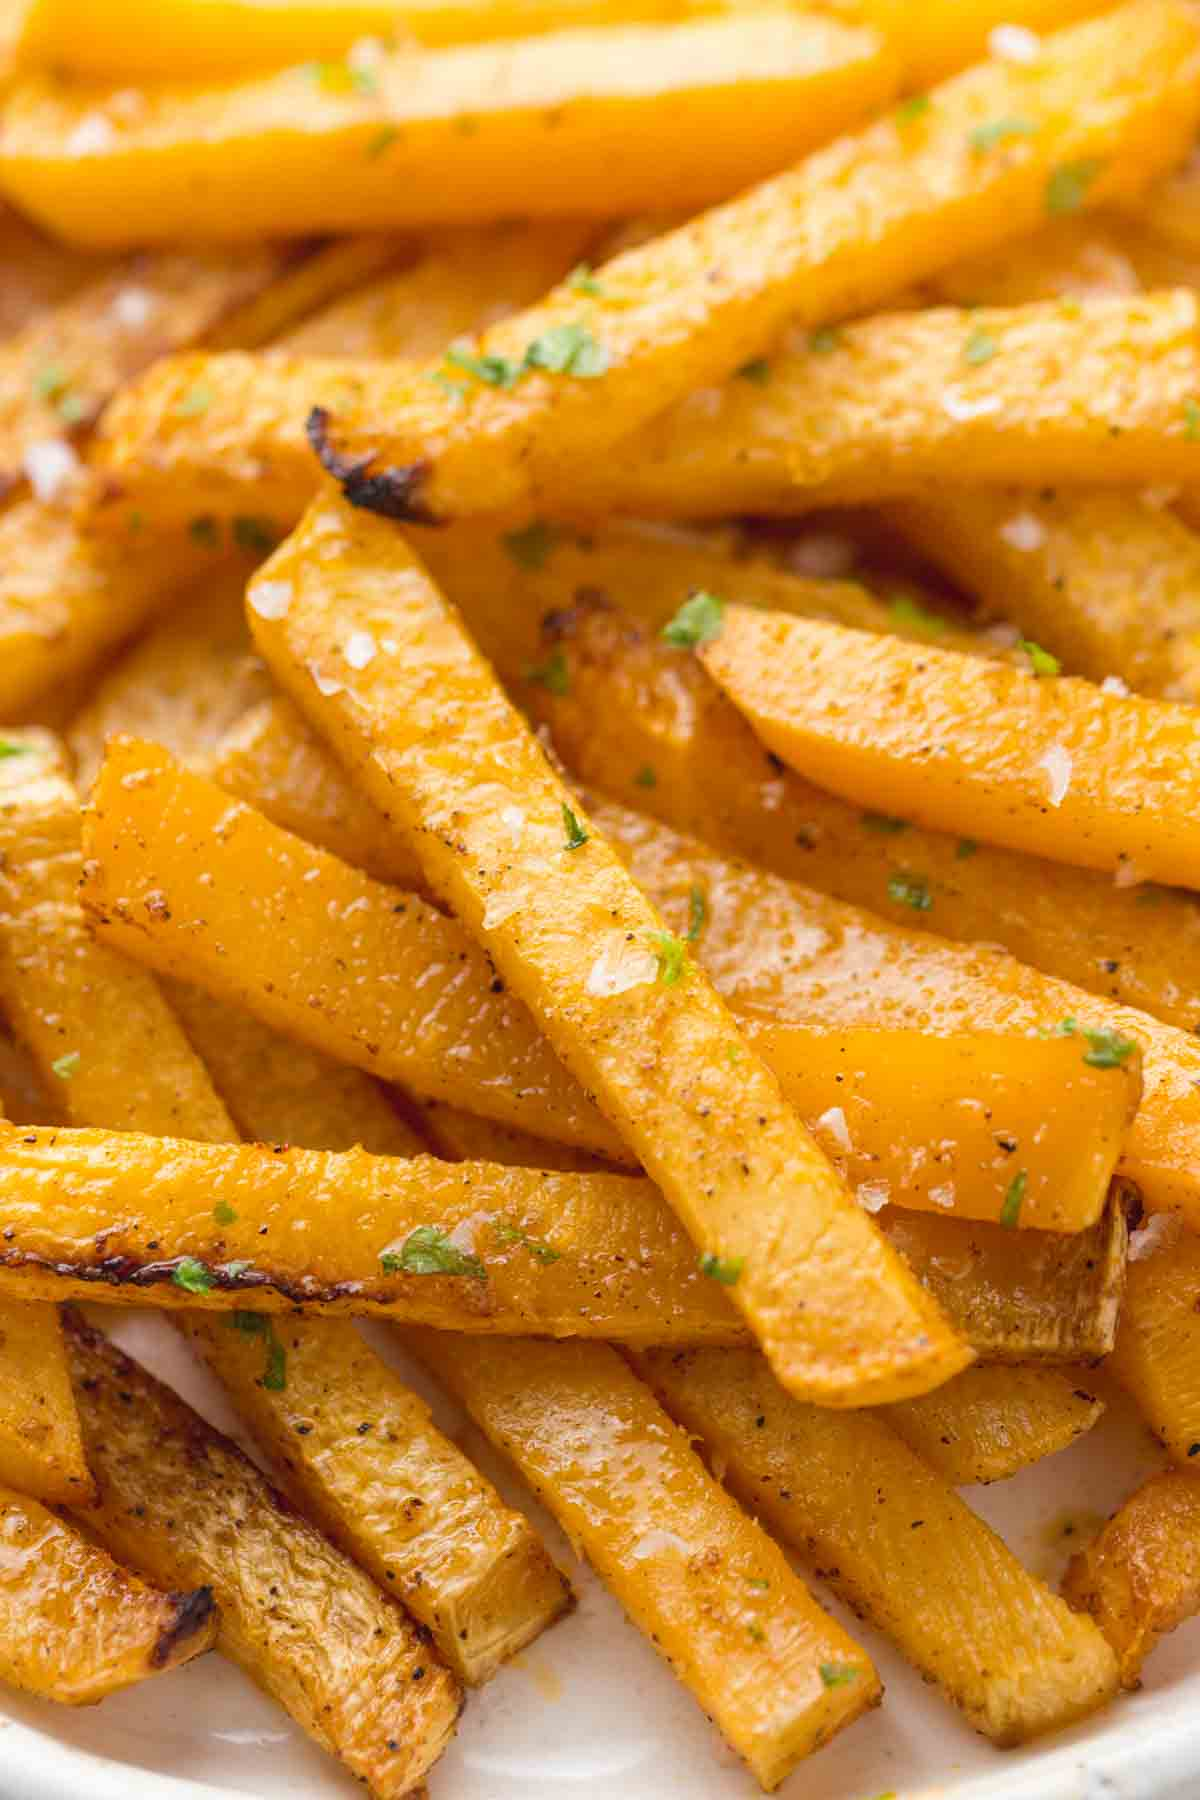 Close up shot of the rubaga fries seasoned with sea salt flakes, and garnished with chopped parsley